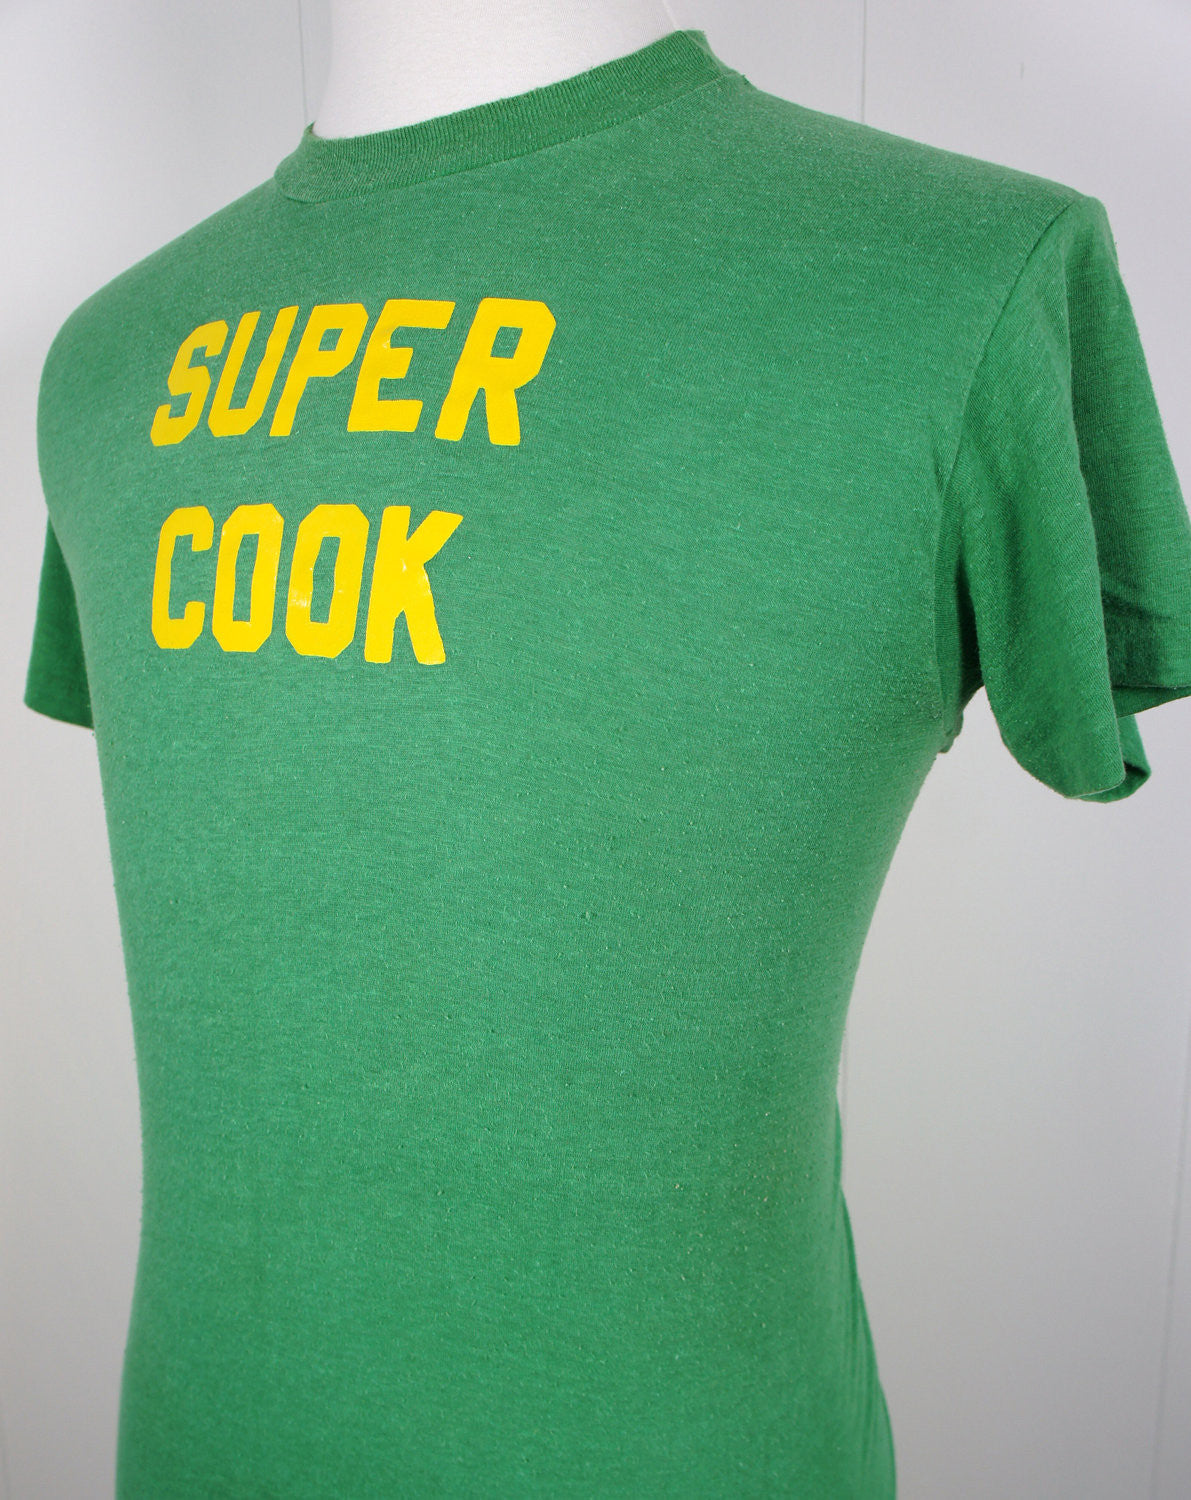 1970's Marching Band Super Cook T-Shirt - Size M